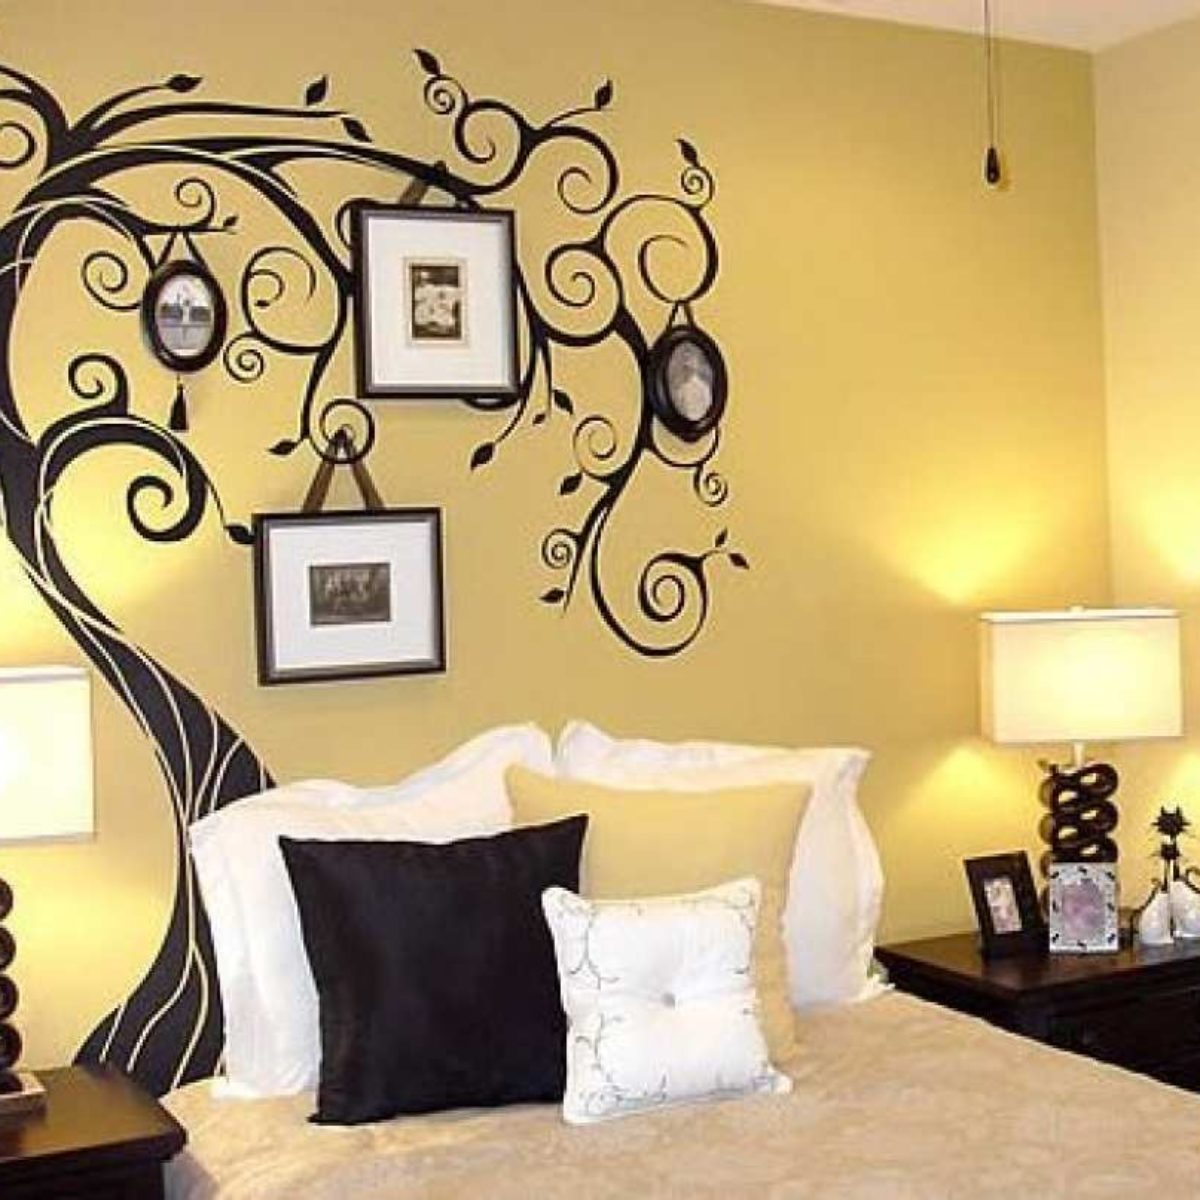 Design Paints Design Paints Simple Wall Painting Designs For Bedroom 935465 Hd Wallpaper Backgrounds Download